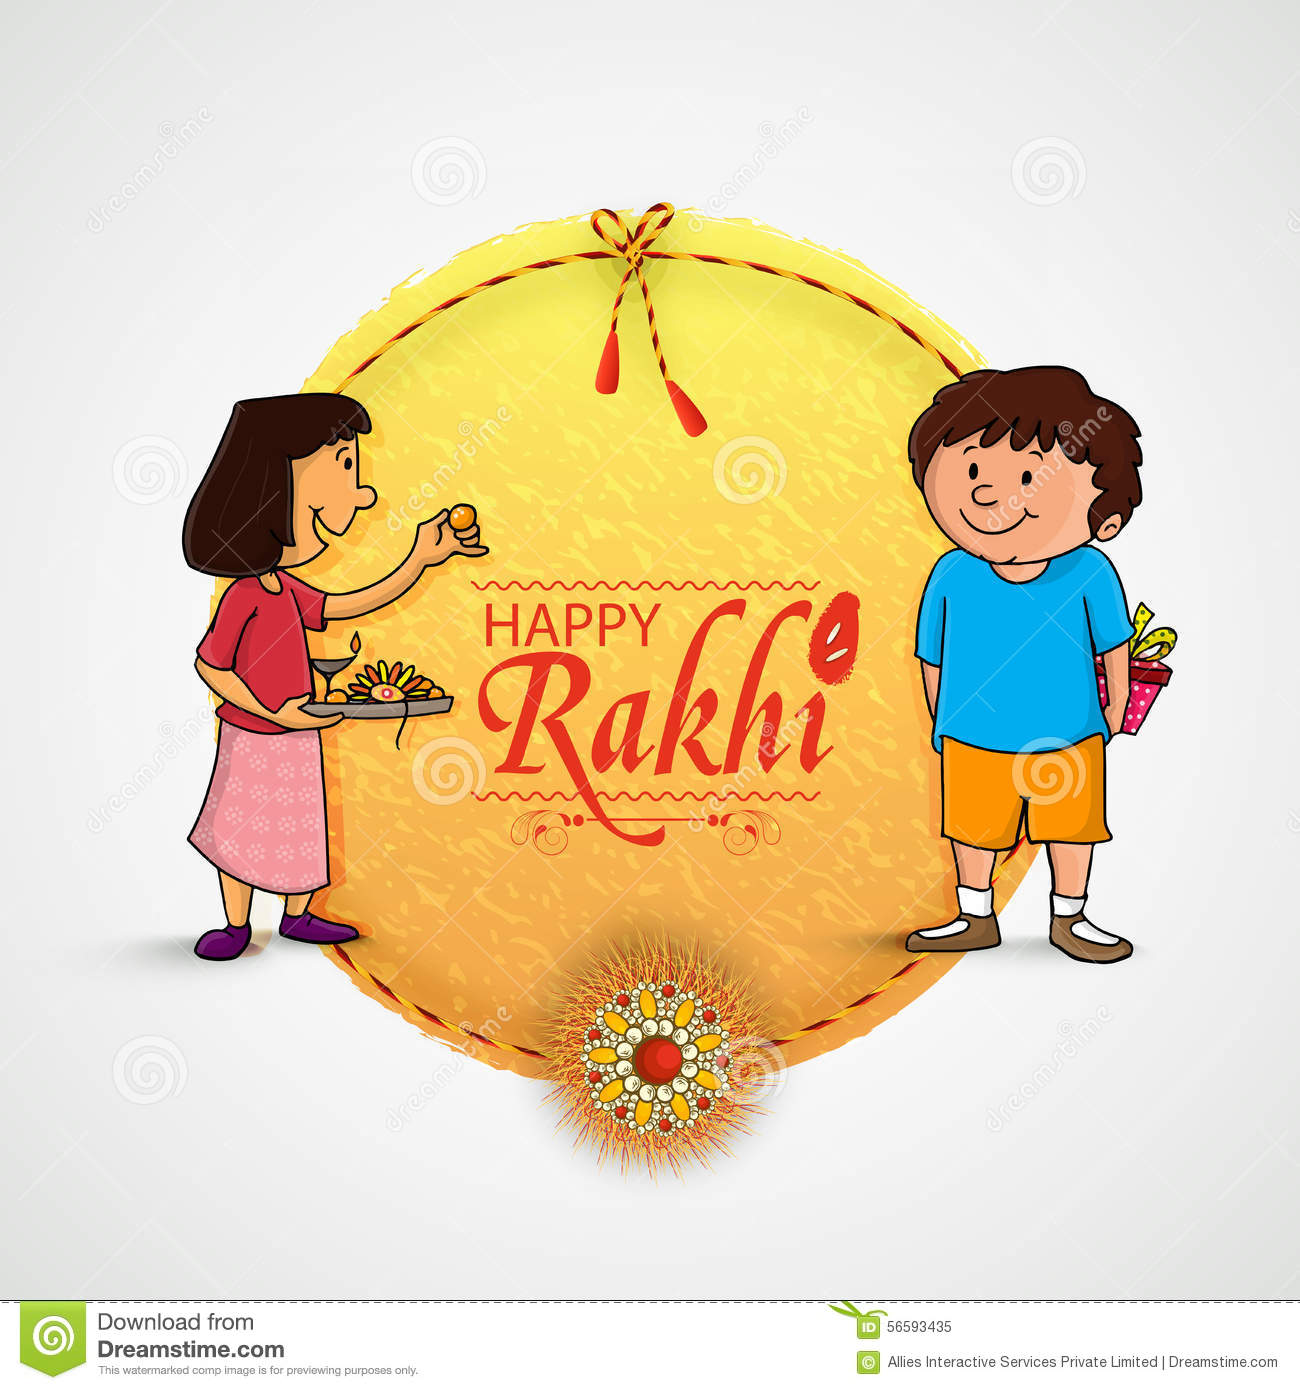 Beautiful Frame For Happy Rakhi Celebration. Stock Illustration ...